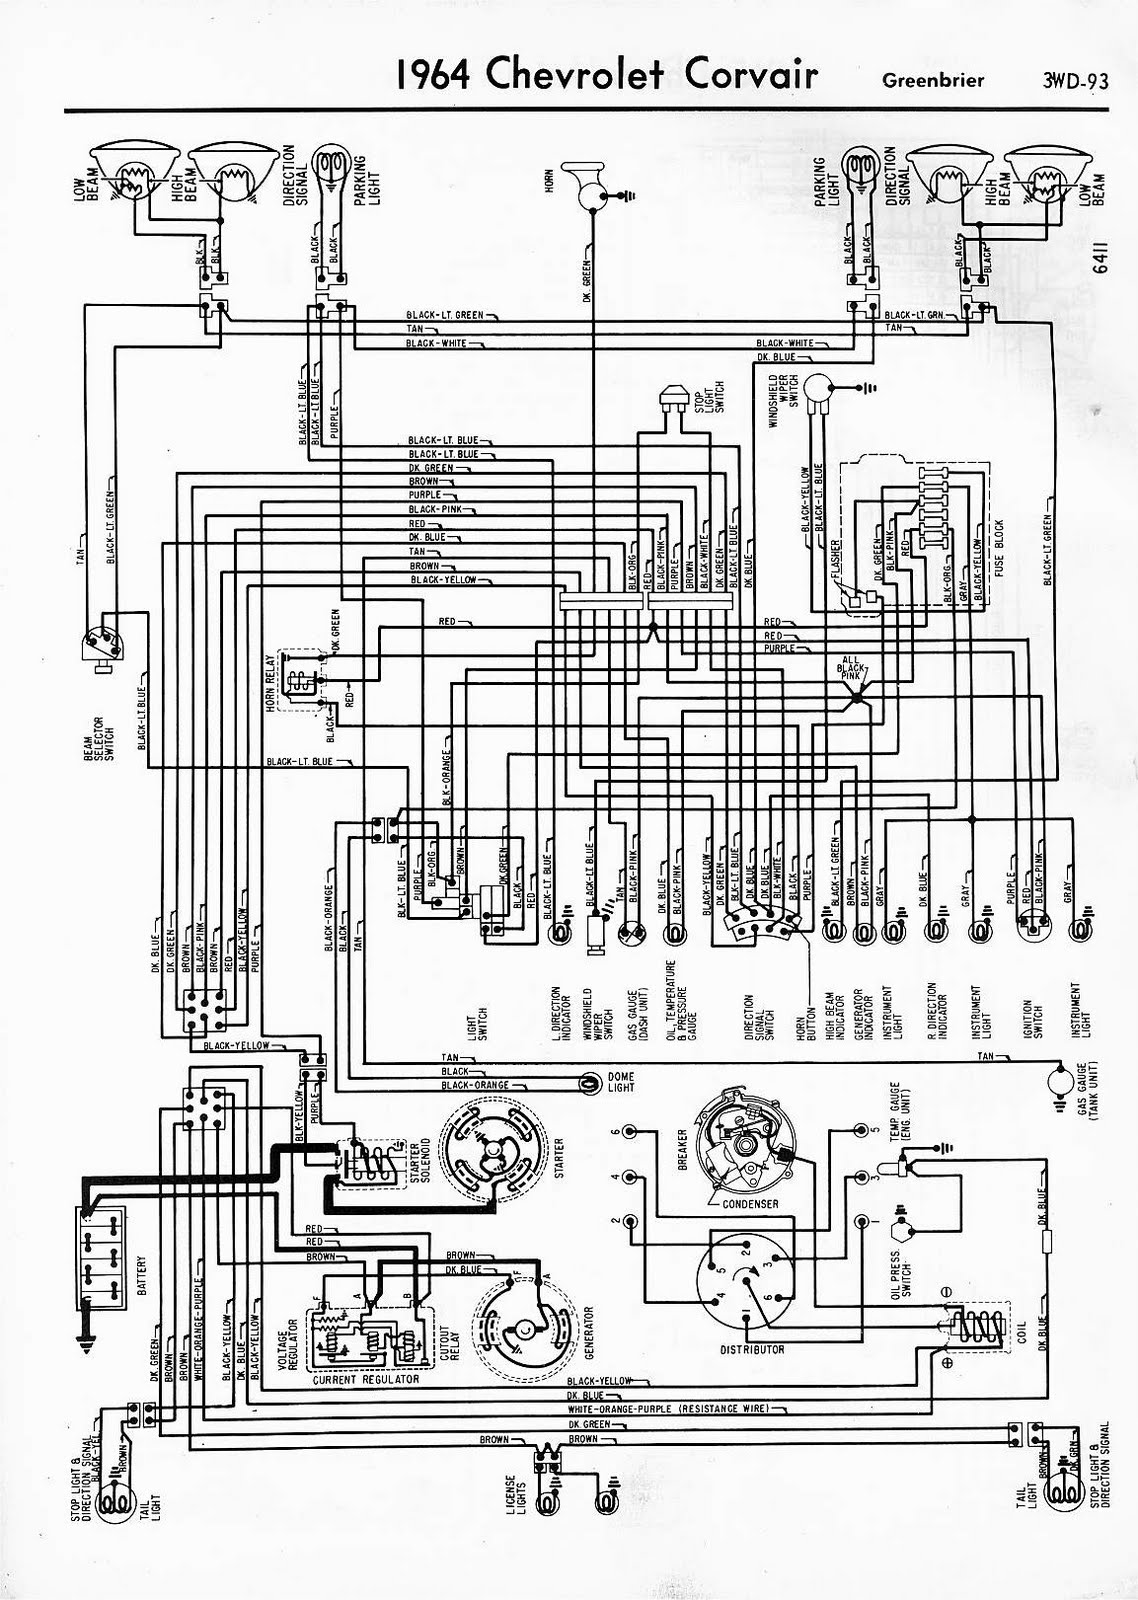 small resolution of free auto wiring diagram 1964 chevrolet corvair 2000 f150 fuse panel diagram ford e 250